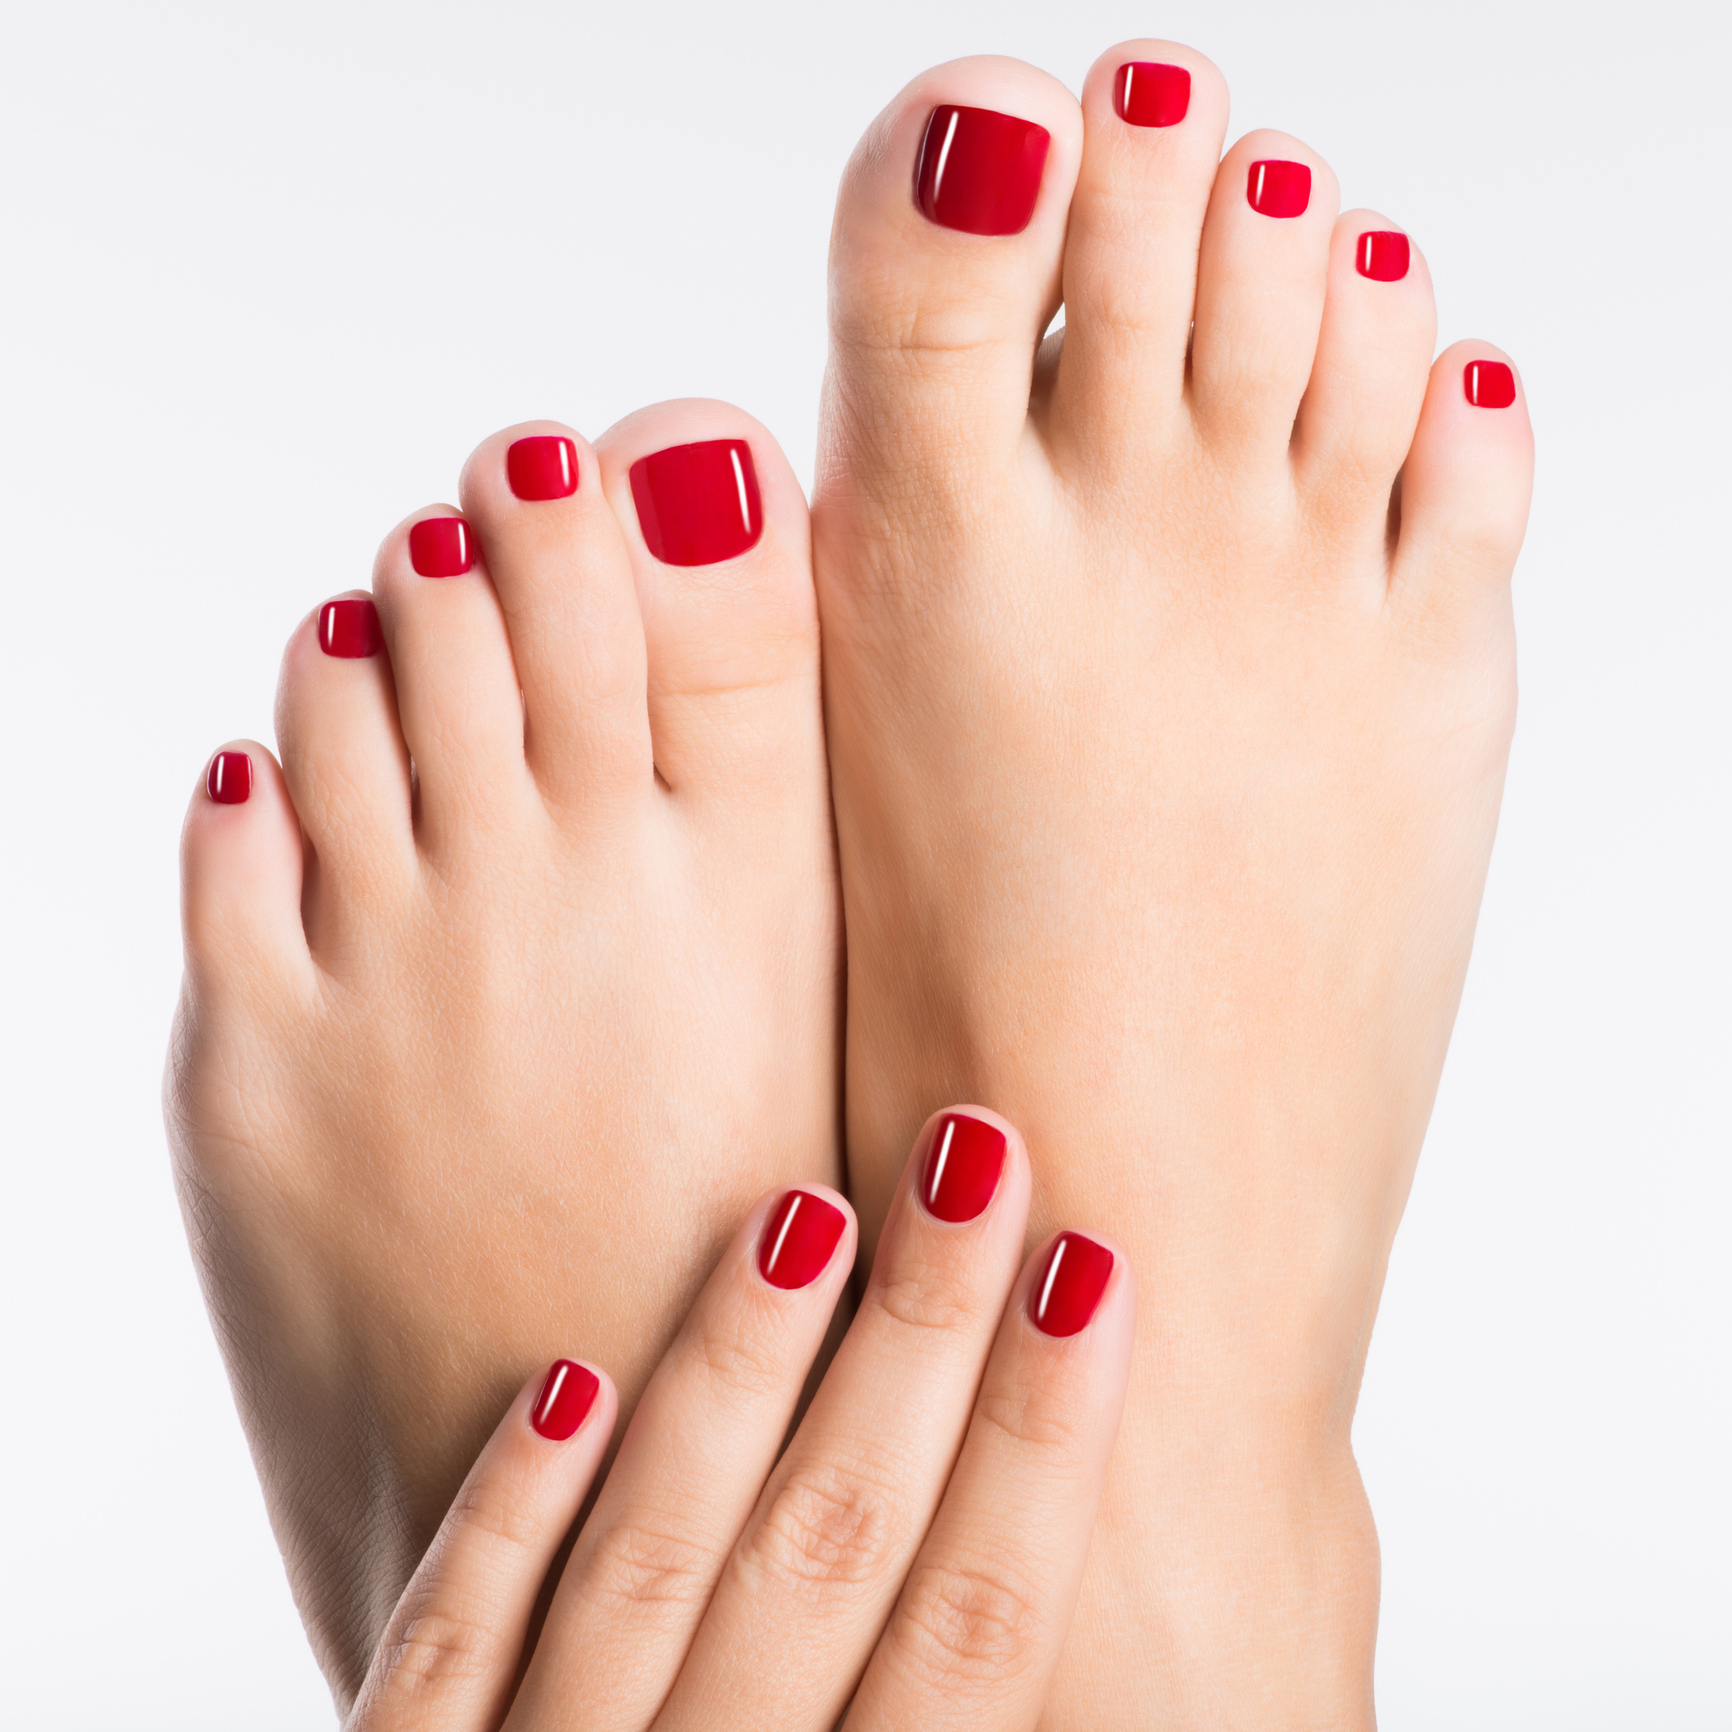 Nail salon Dundee at Sutherlands Hair and Beauty in Newport-on-Tay